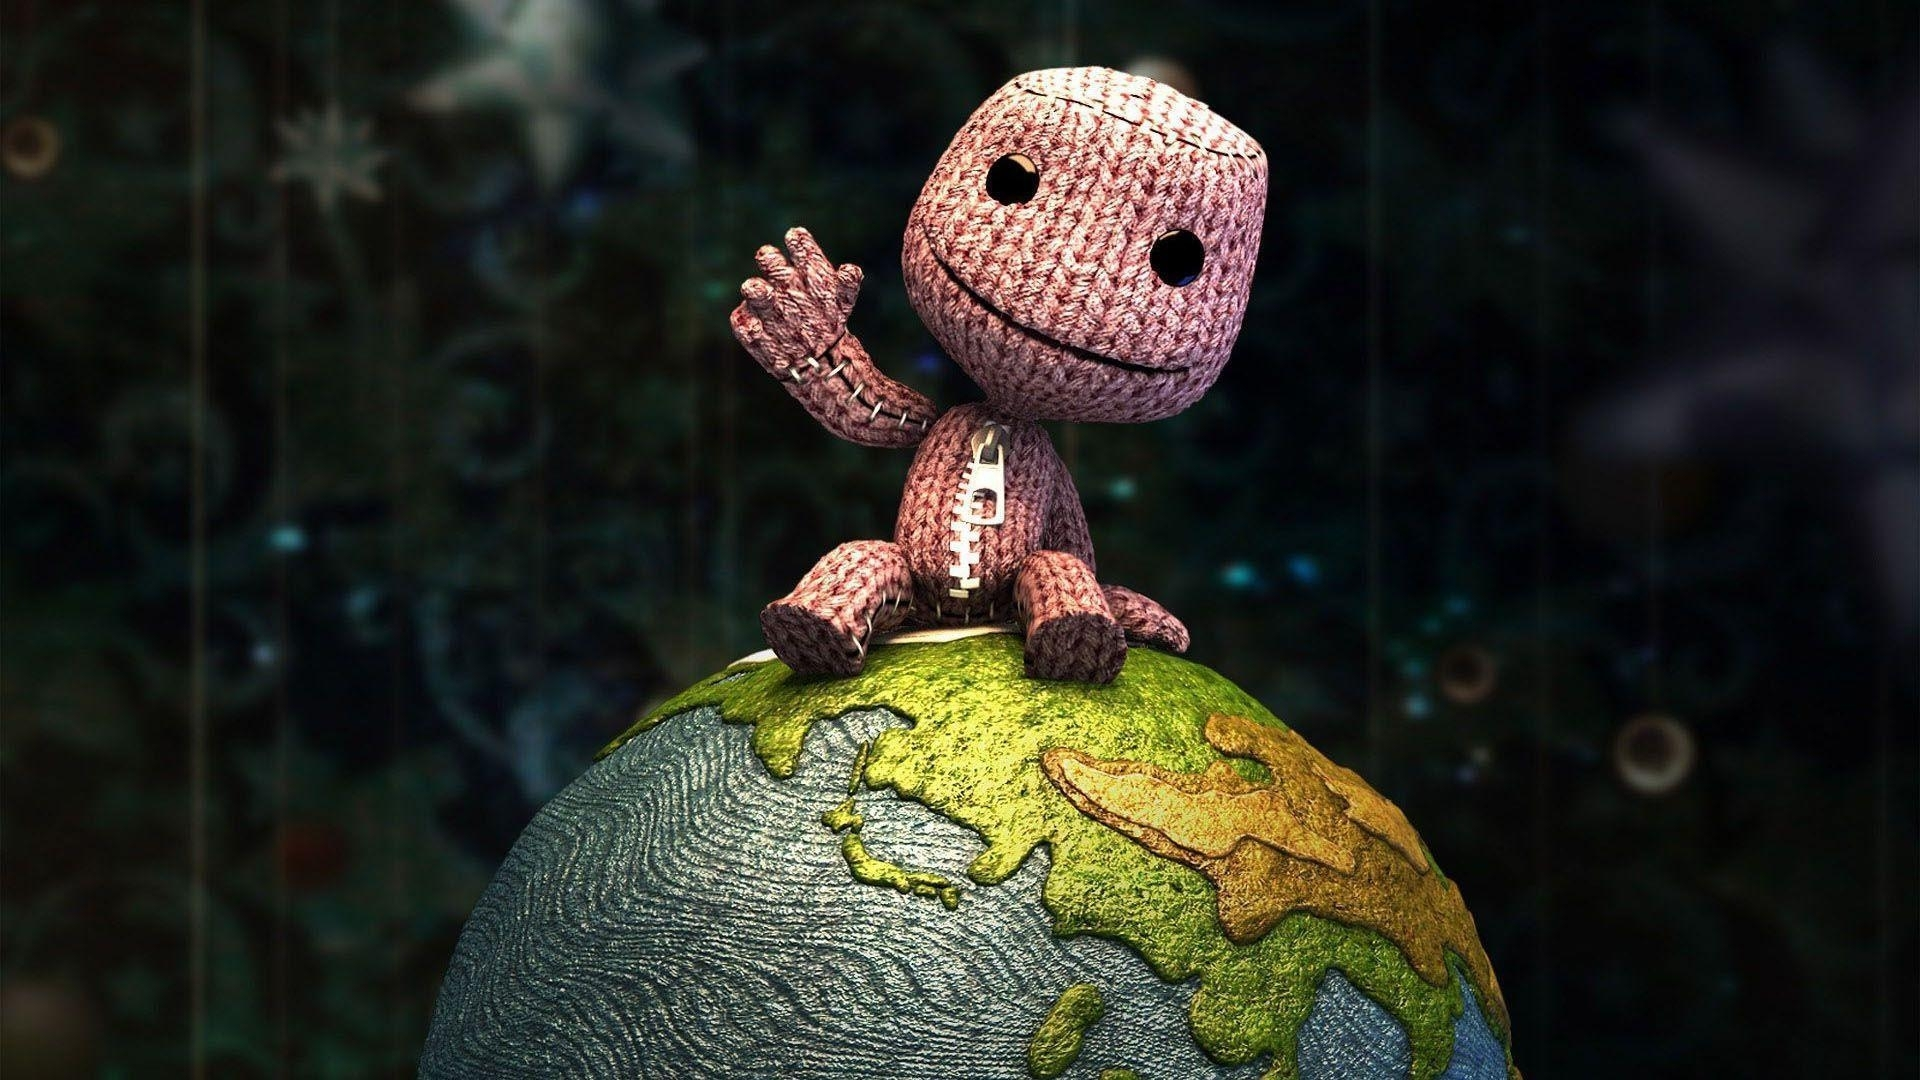 littlebigplanet wallpapers - wallpaper cave